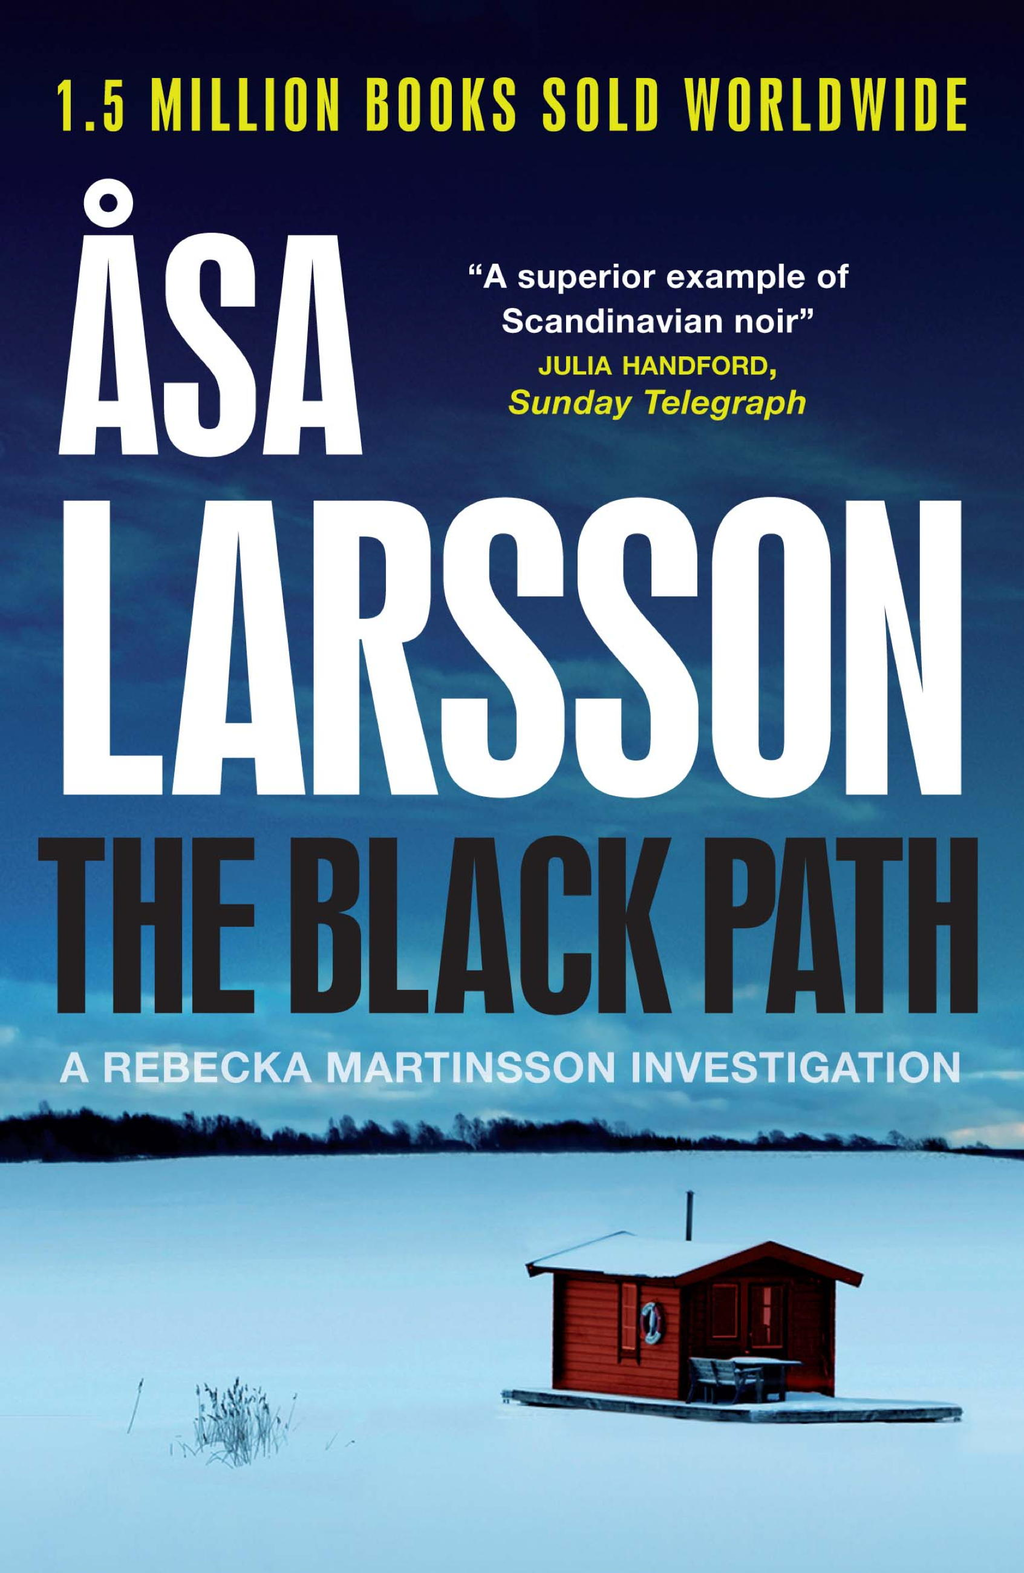 The Black Path A Rebecka Martinsson Investigation